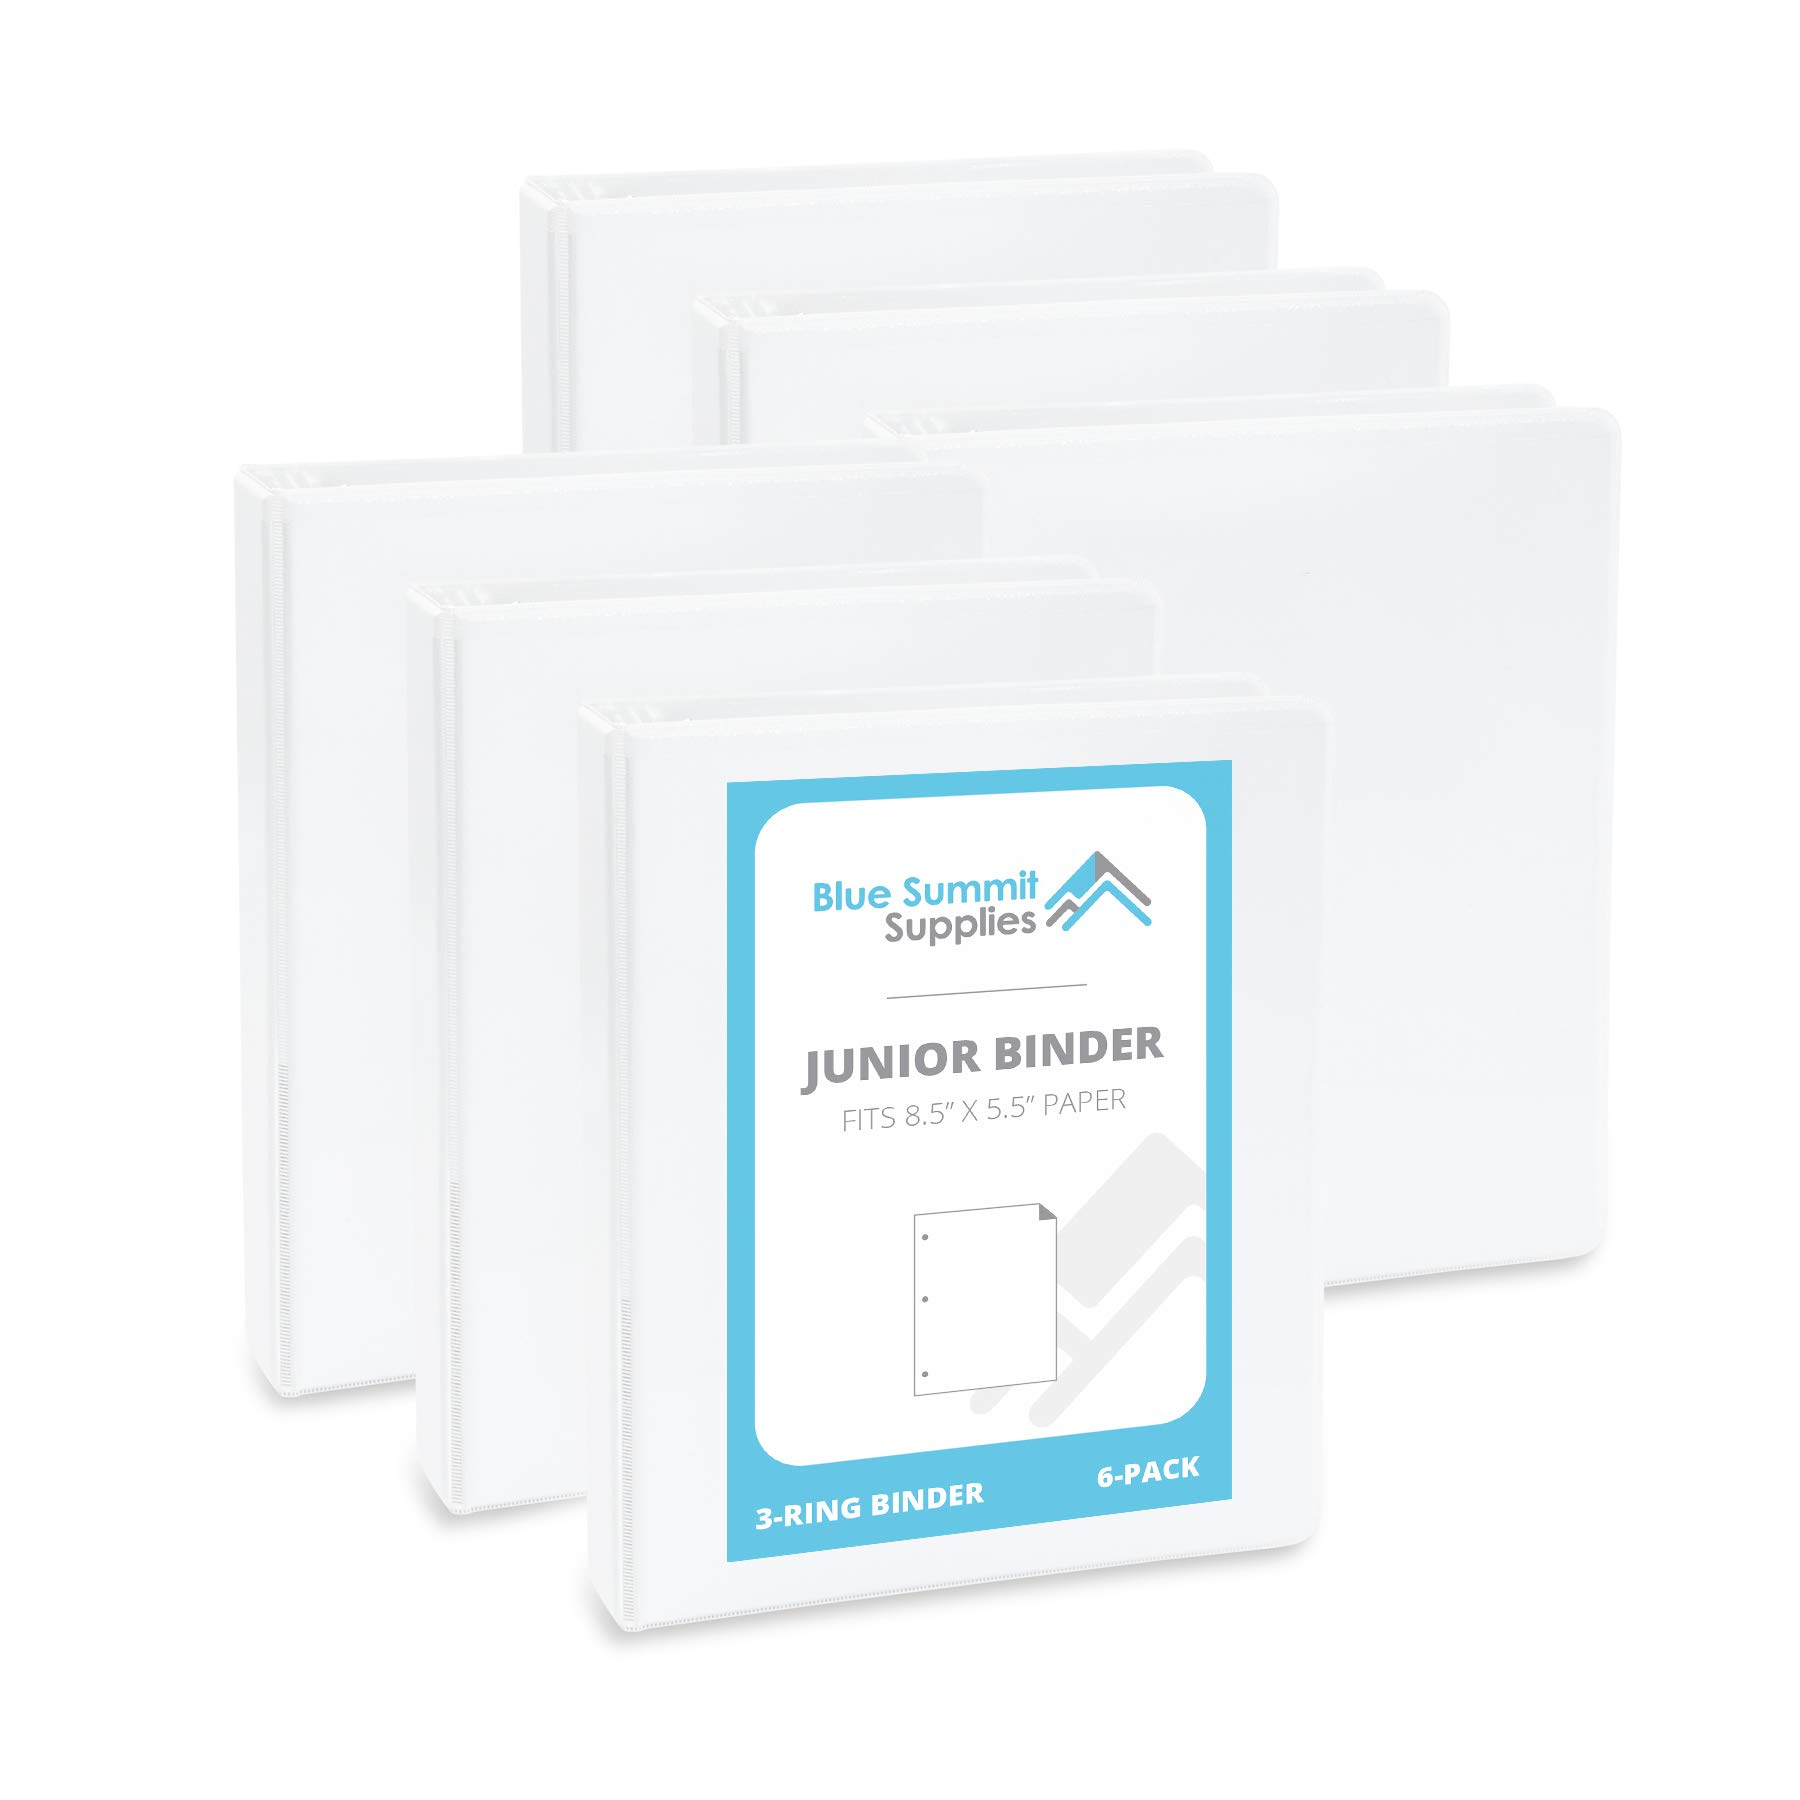 Blue Summit Supplies Mini 3-Ring Binder, Junior 1 Inch Mini Binder, Small 3-Ring Binder, Small Size Fits 5 1/2 x 8 1/2 Binder Paper, Set of Small Binders Ideal for Playbills or Planner, White, 6 Pack by Blue Summit Supplies